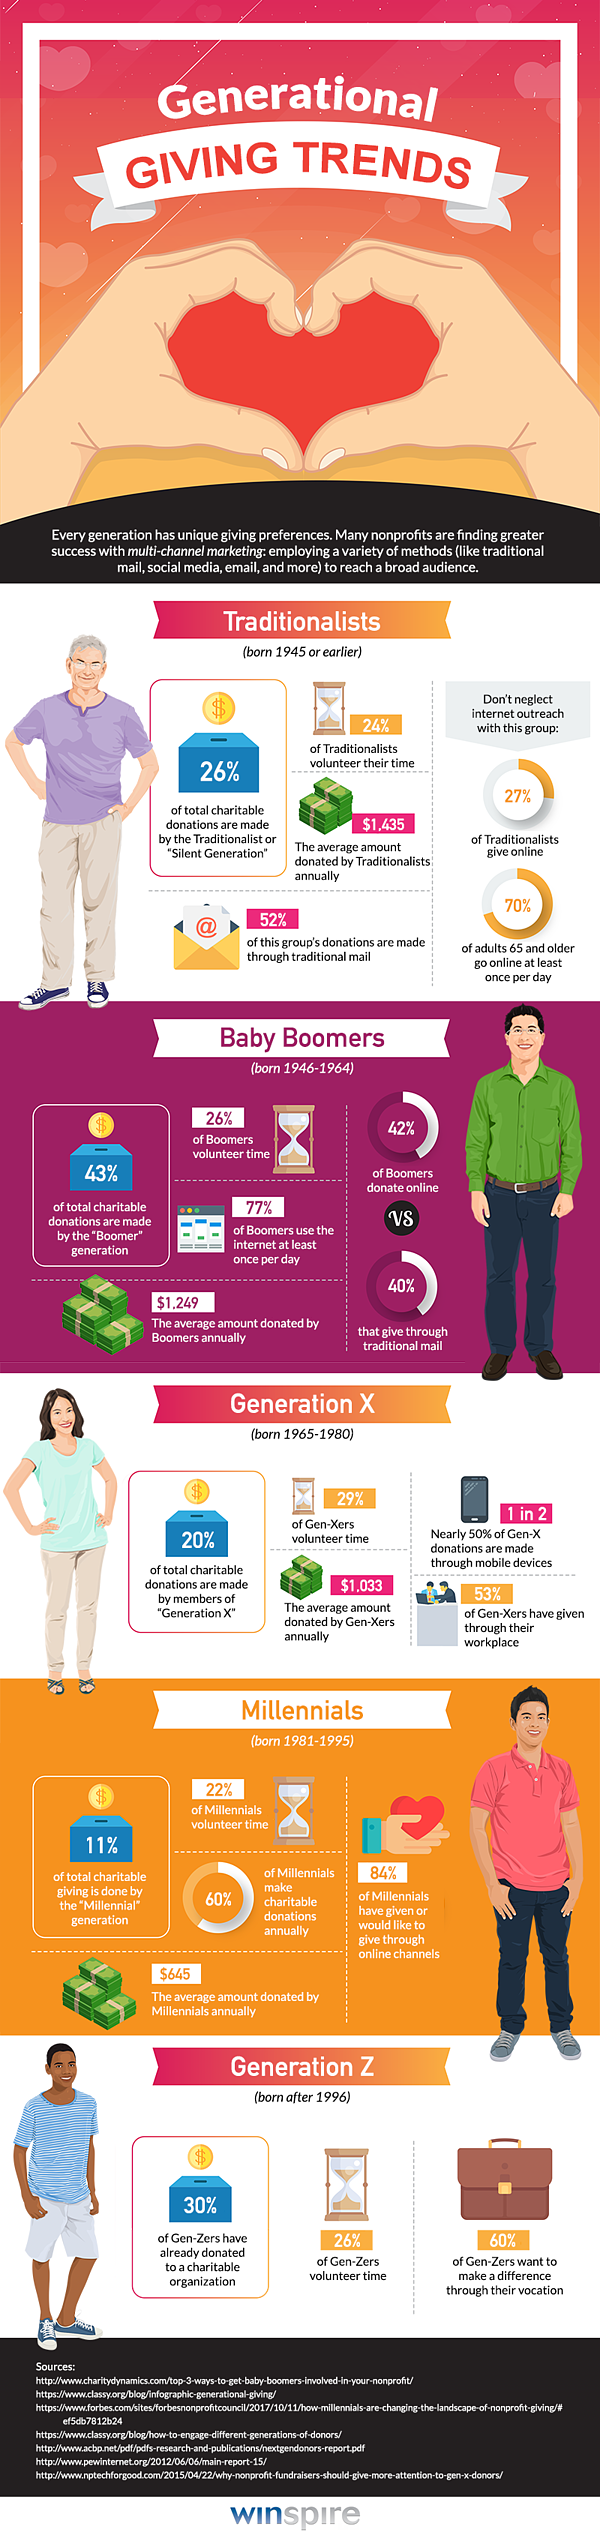 How Different Generations Are Supporting Charity in 2019: Infographic